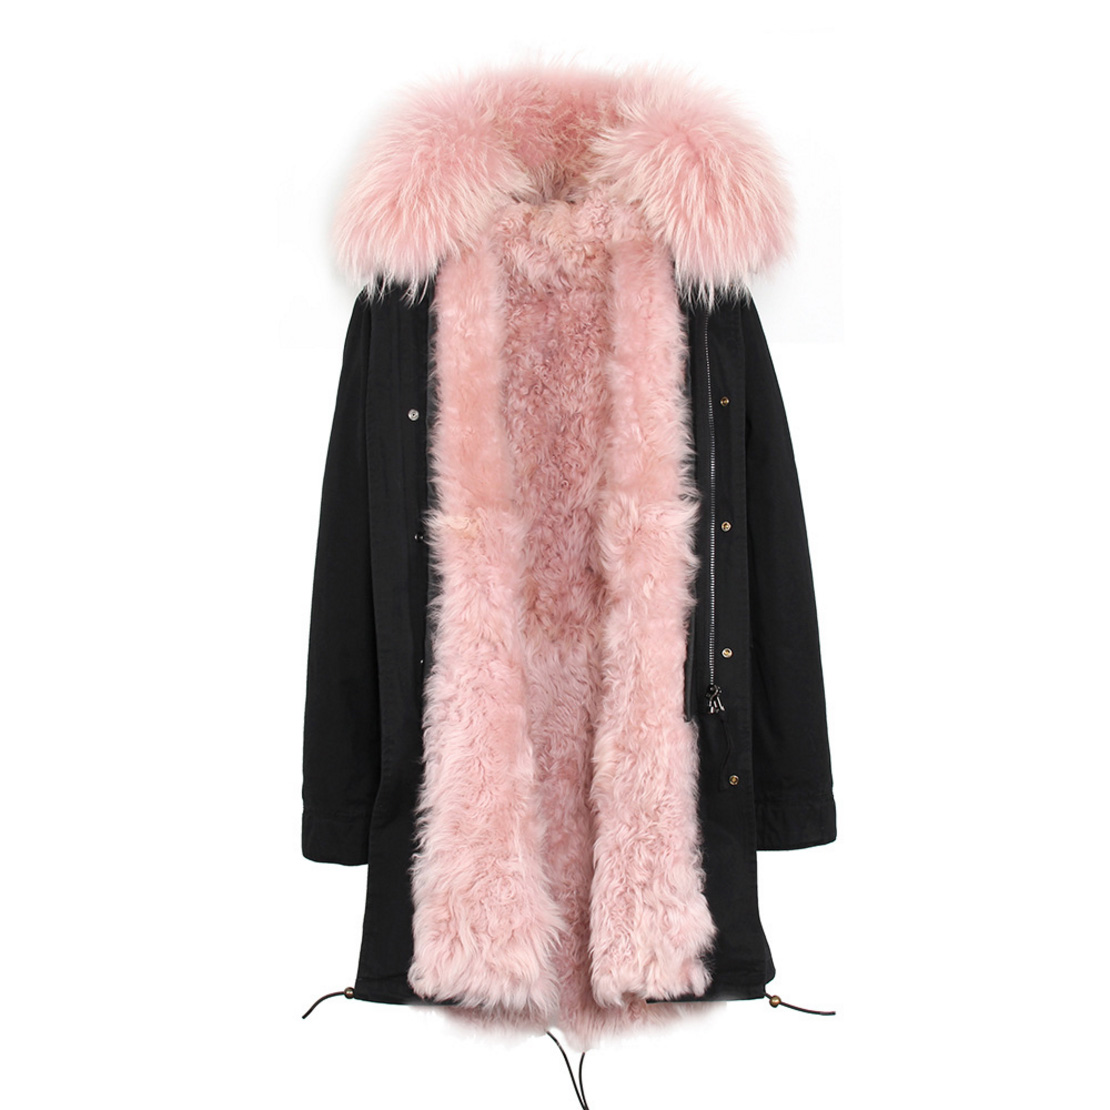 Raccoon Fur Trimmed Hooded Parka with Detachable Lamb Fur Liner 132-20